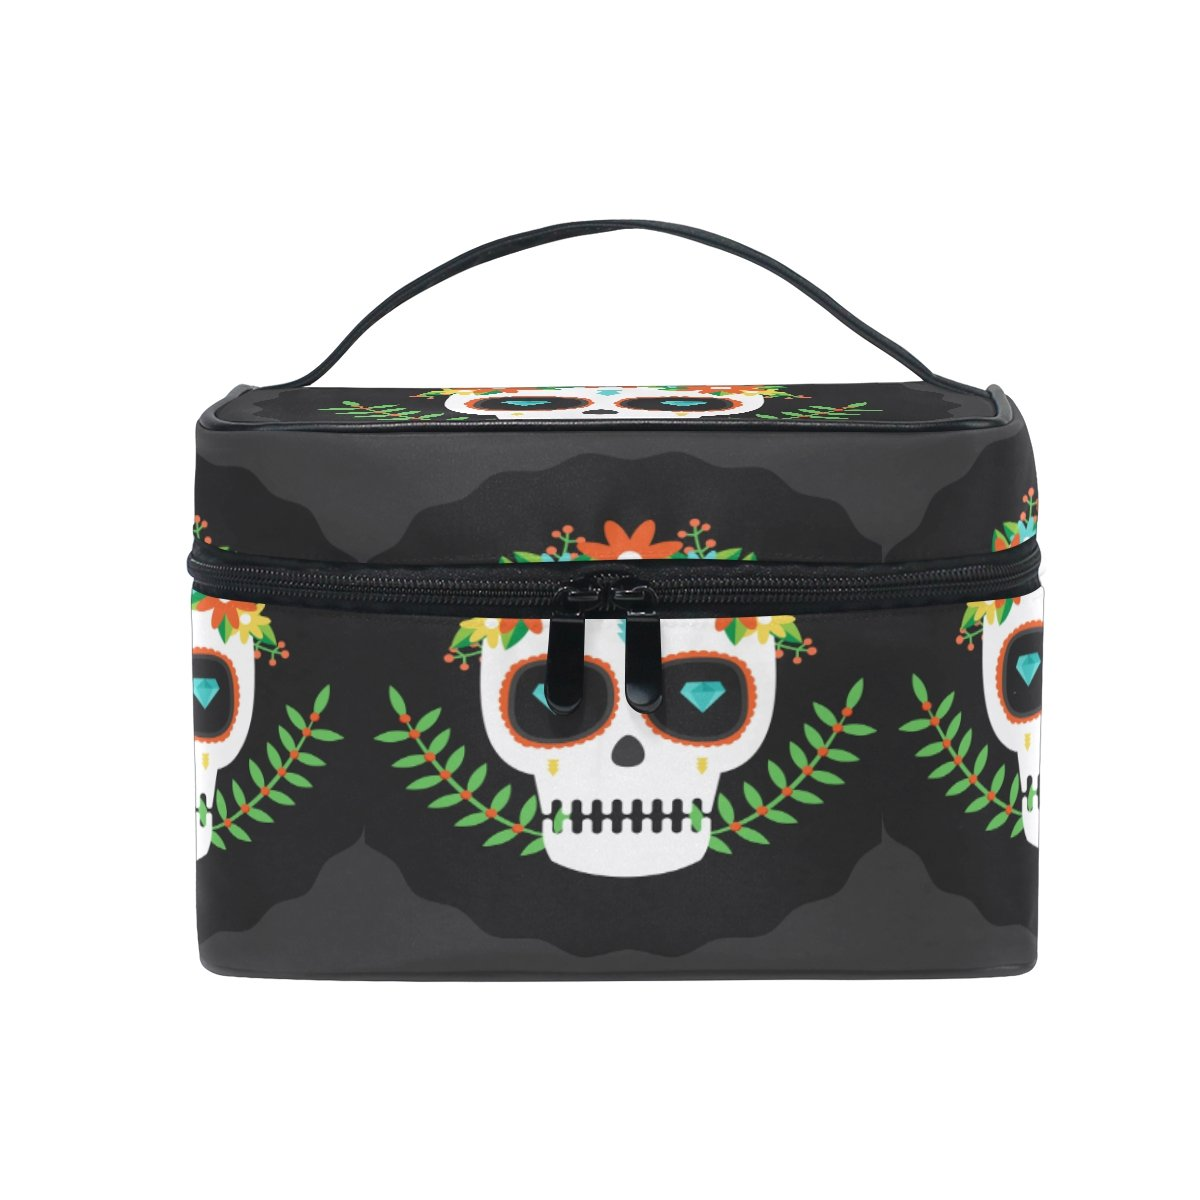 Makeup Bag Skull Flower Travel Cosmetic Bags Organizer Train Case Toiletry Make Up Pouch